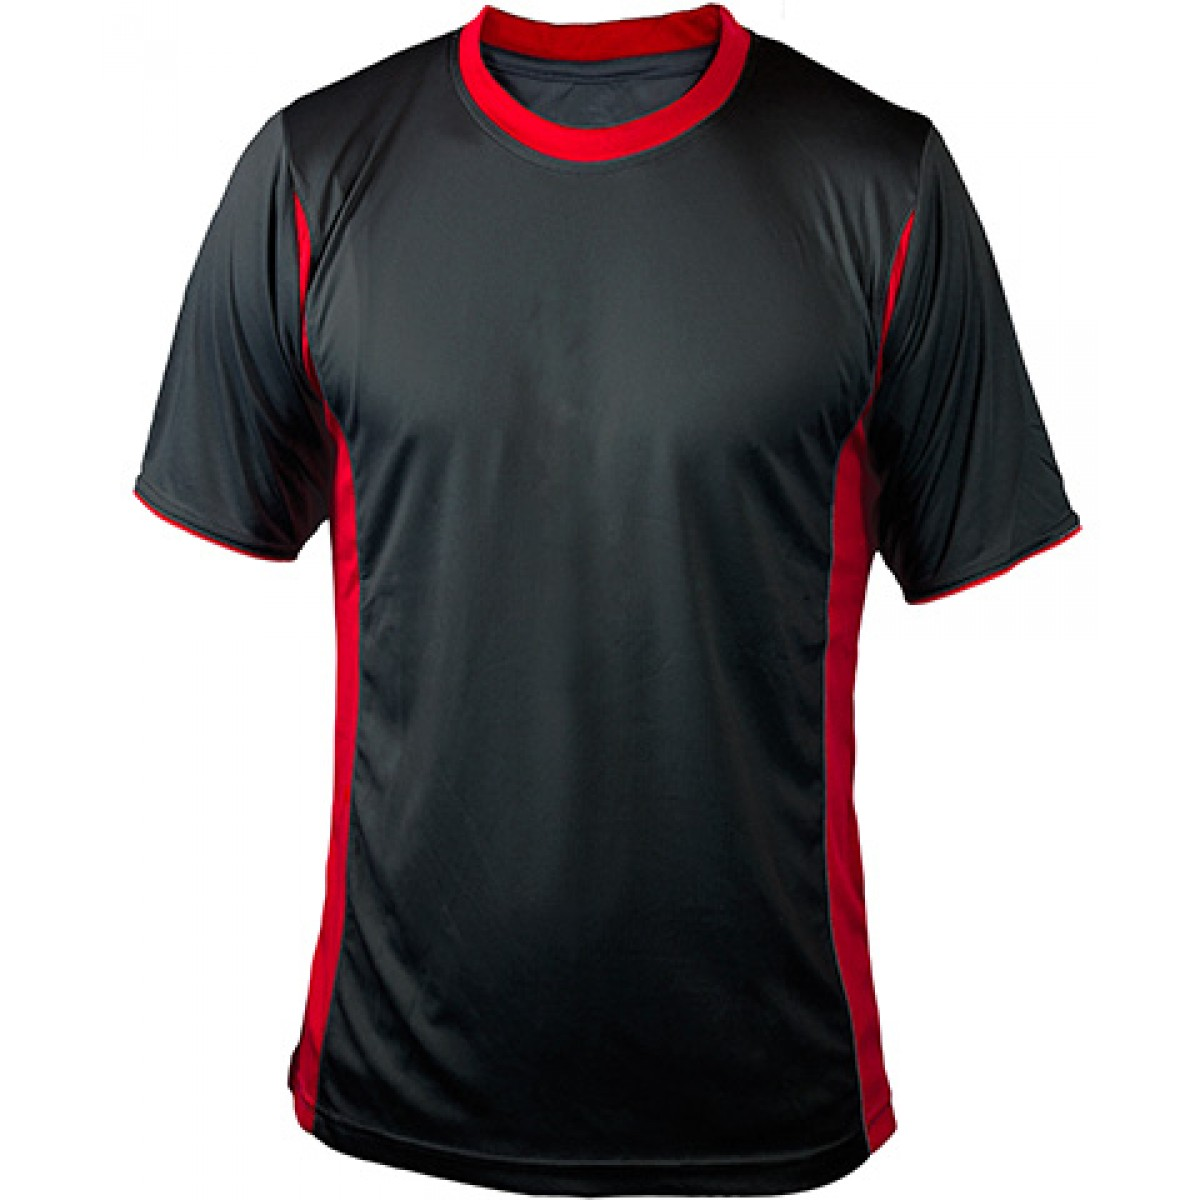 Black Short Sleeves Performance With Red Side Insert-Black-2XL